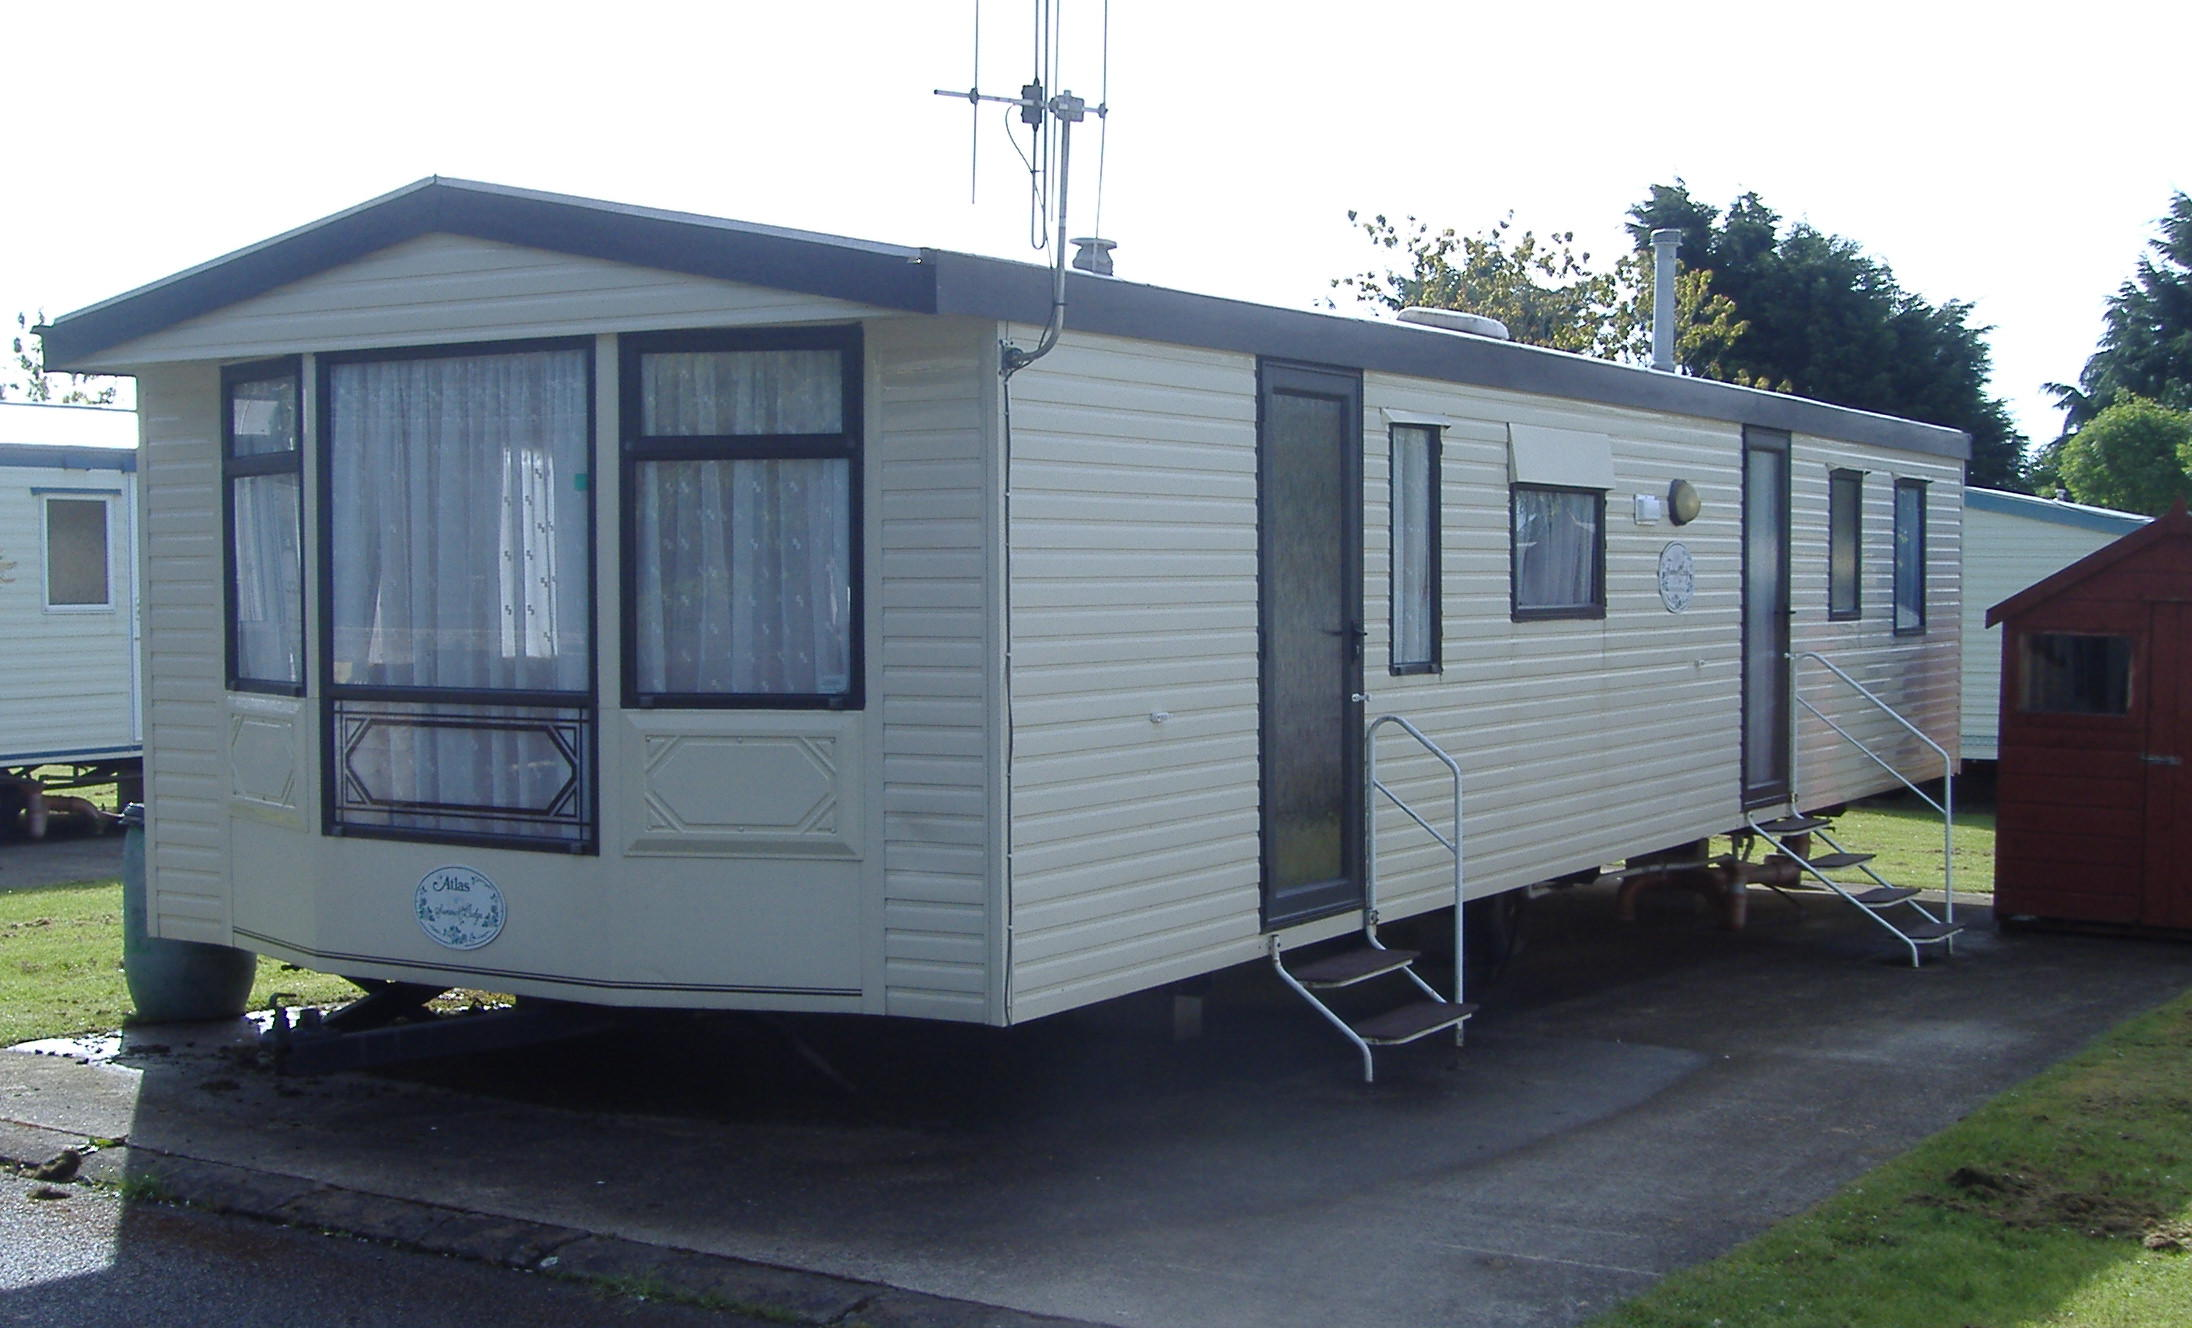 Caravan Park Louth - Mobile Homes Ireland